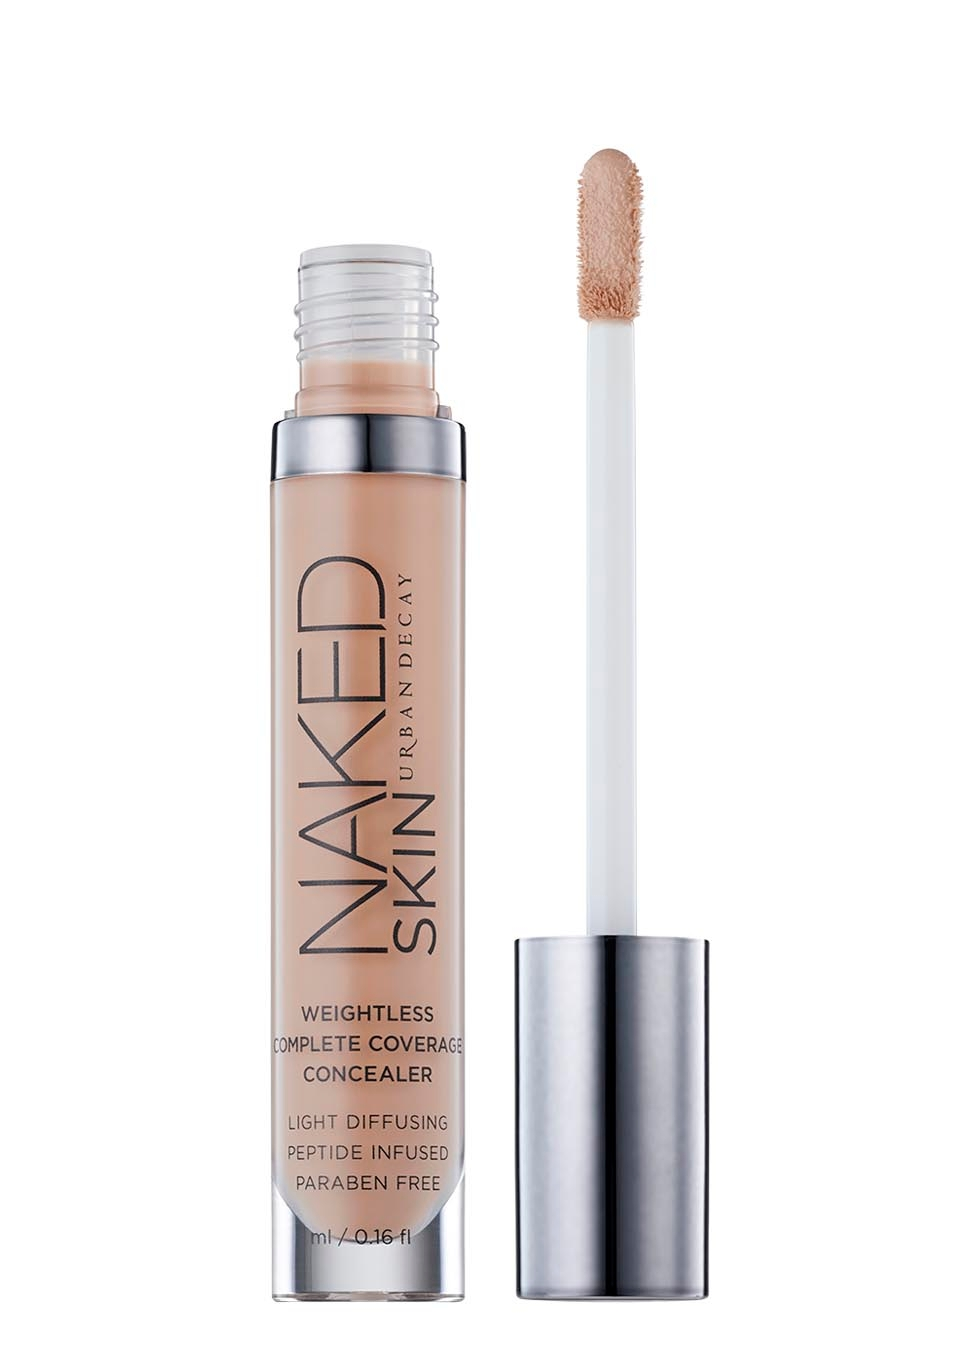 Naked Skin Weightless Complete Coverage Concealer - Urban Decay